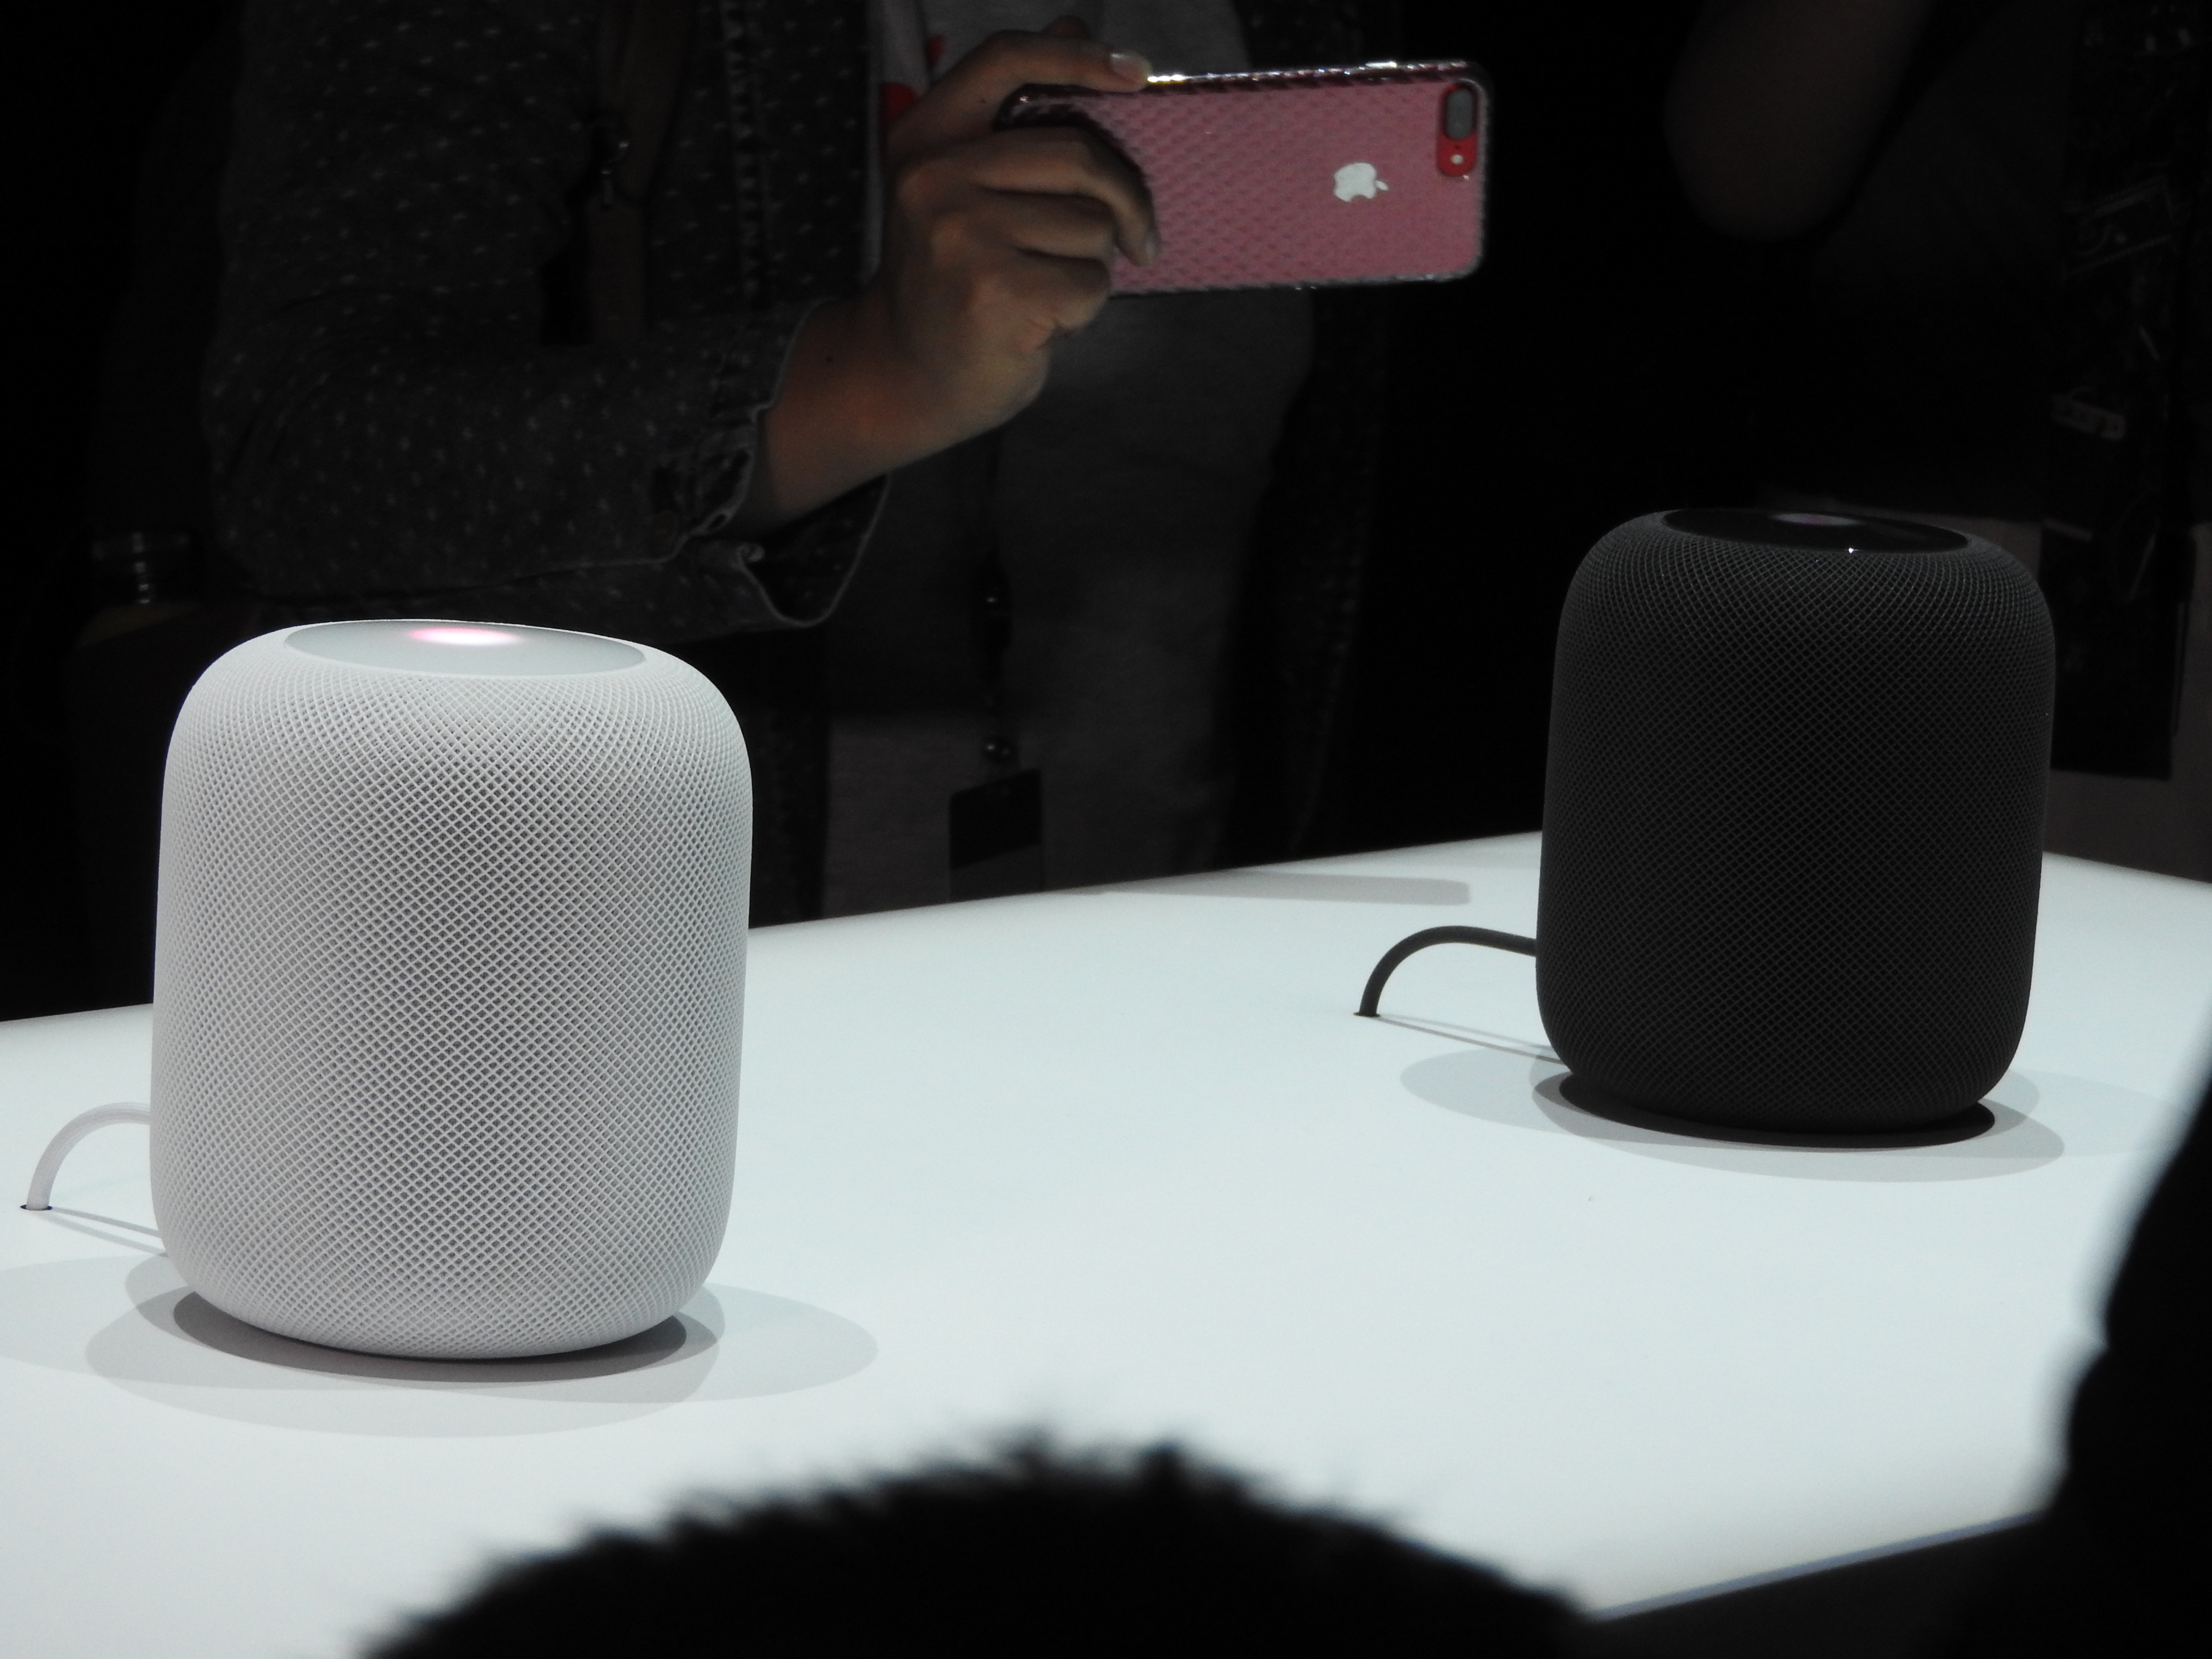 Bad News, Siri: Survey Finds Price is Most Important to Smart Speaker Shoppers